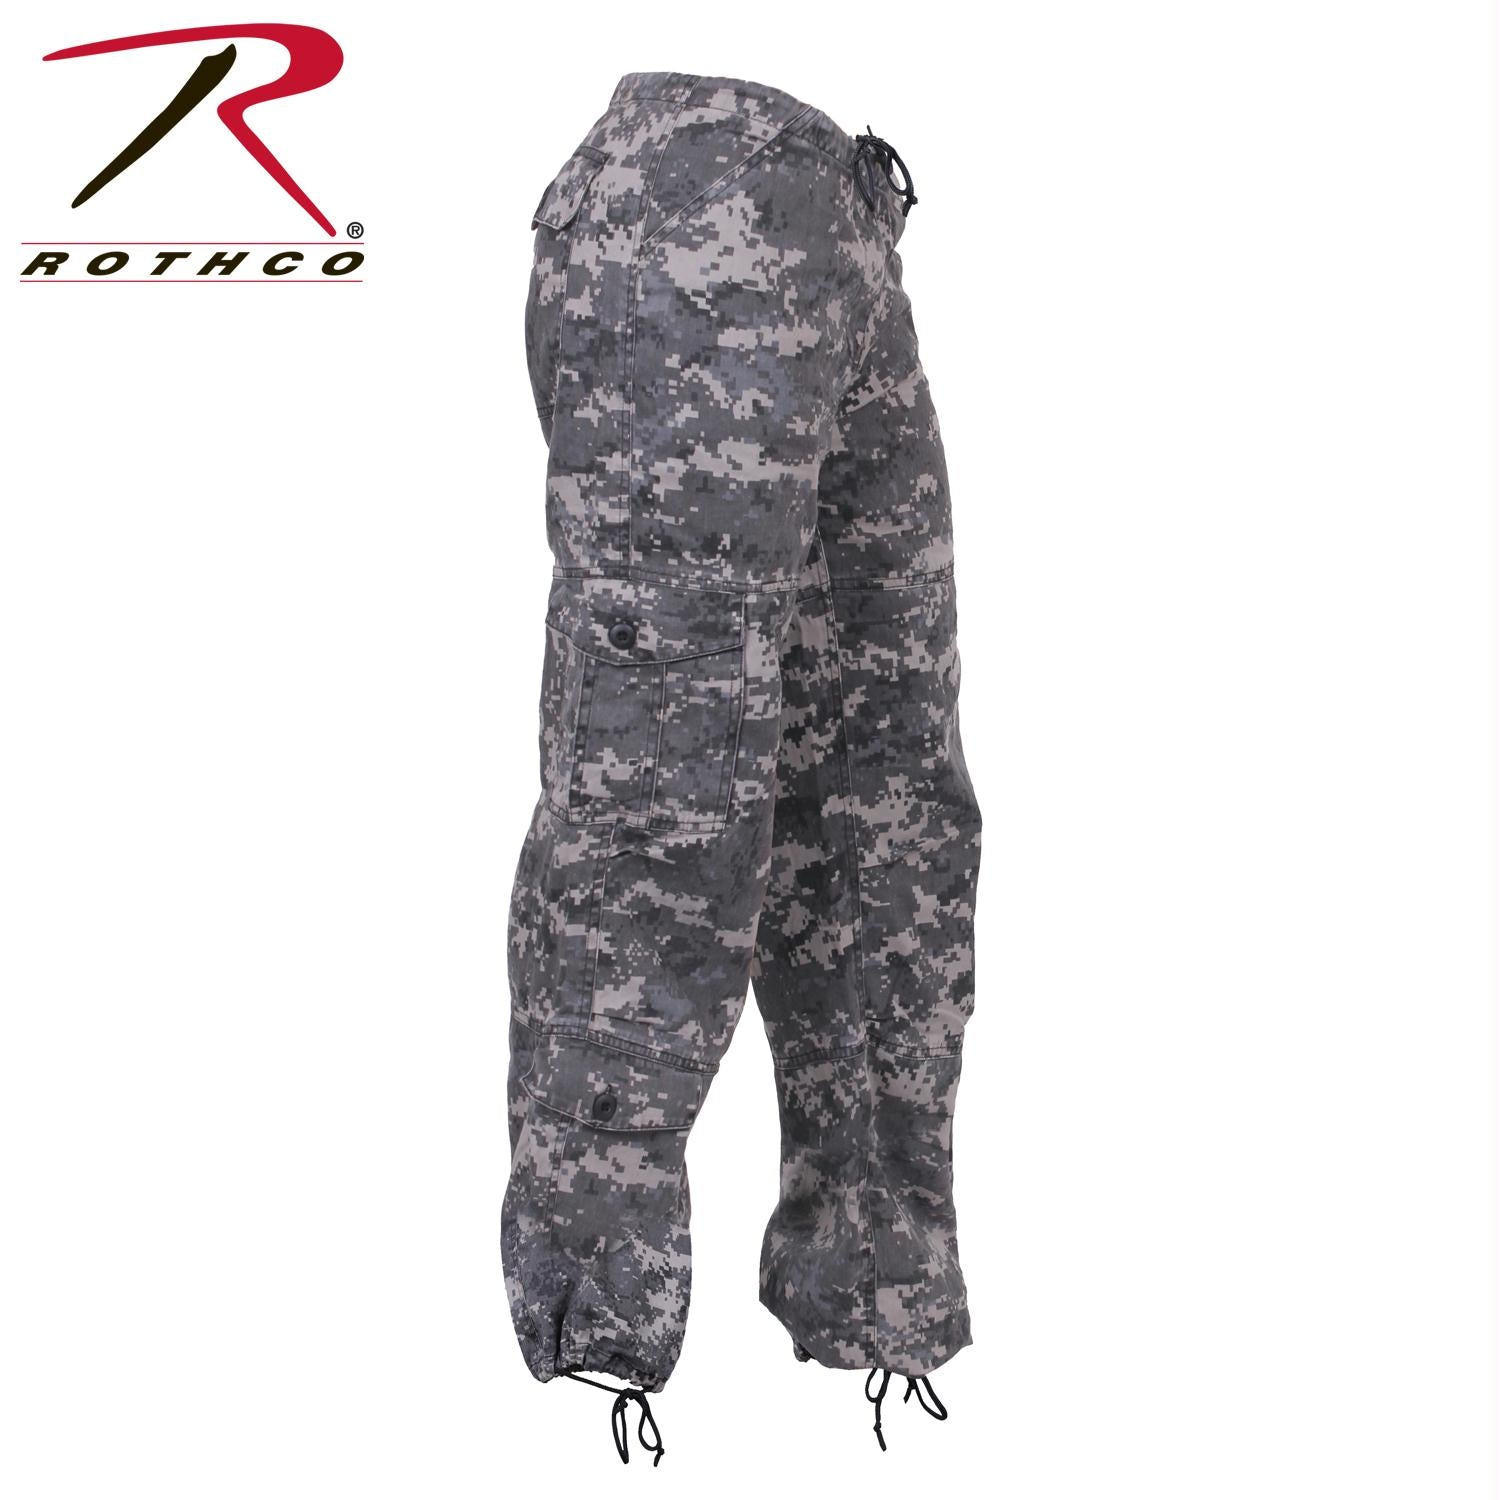 Rothco Womens Camo Vintage Paratrooper Fatigue Pants - Subdued Urban Digital Camo / L